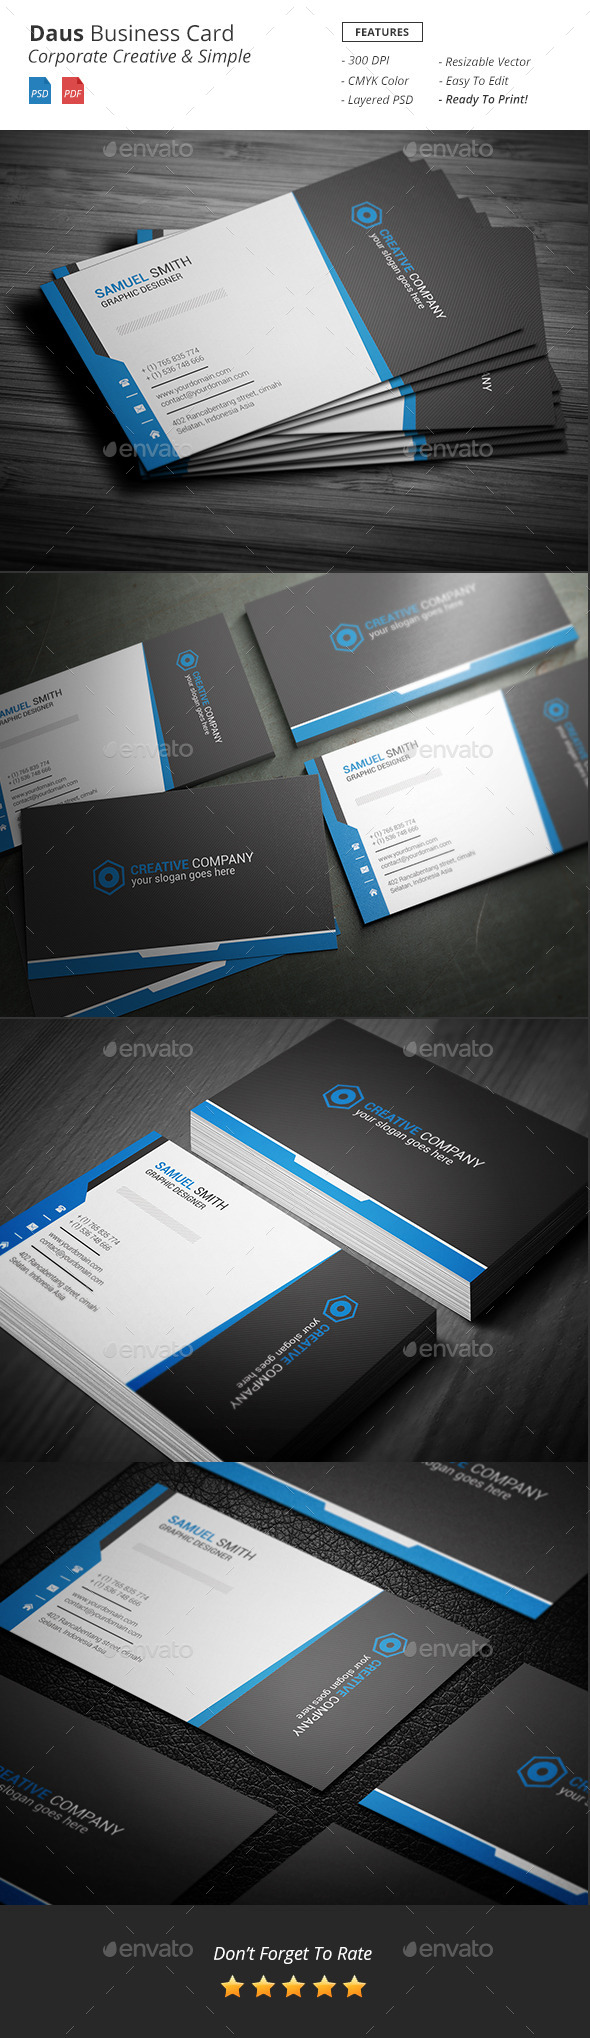 GraphicRiver Daus Corporate Business Card 11939476